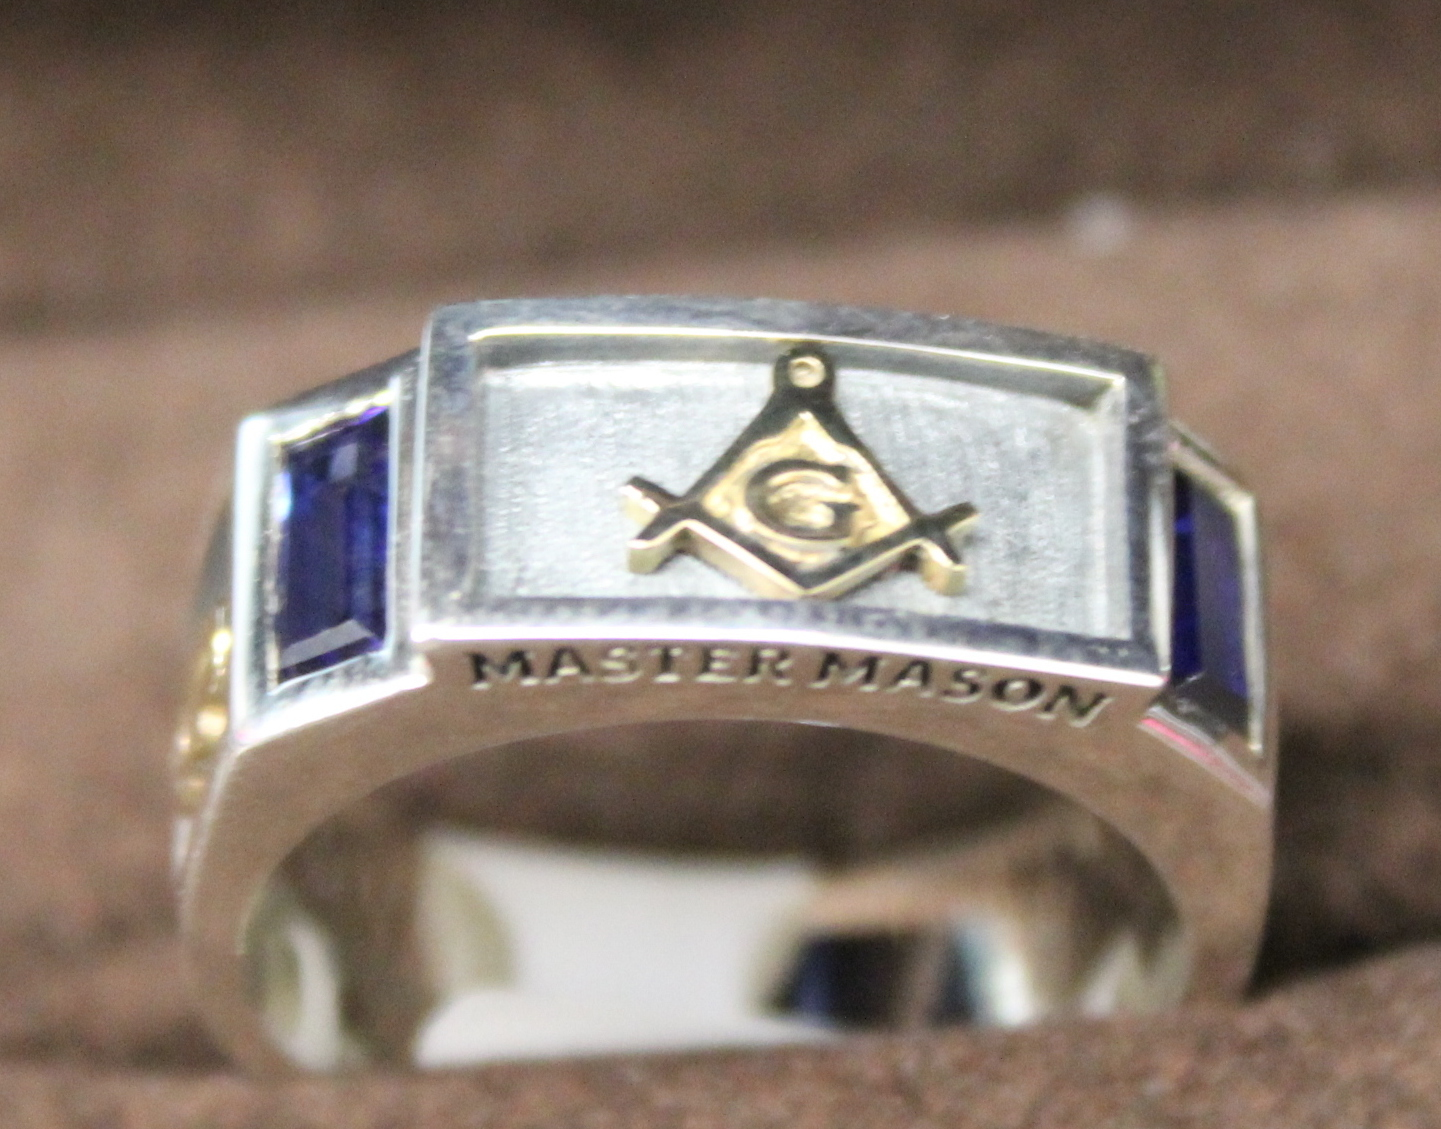 NEW Sterling Silver/14K Master Mason Ring size 10